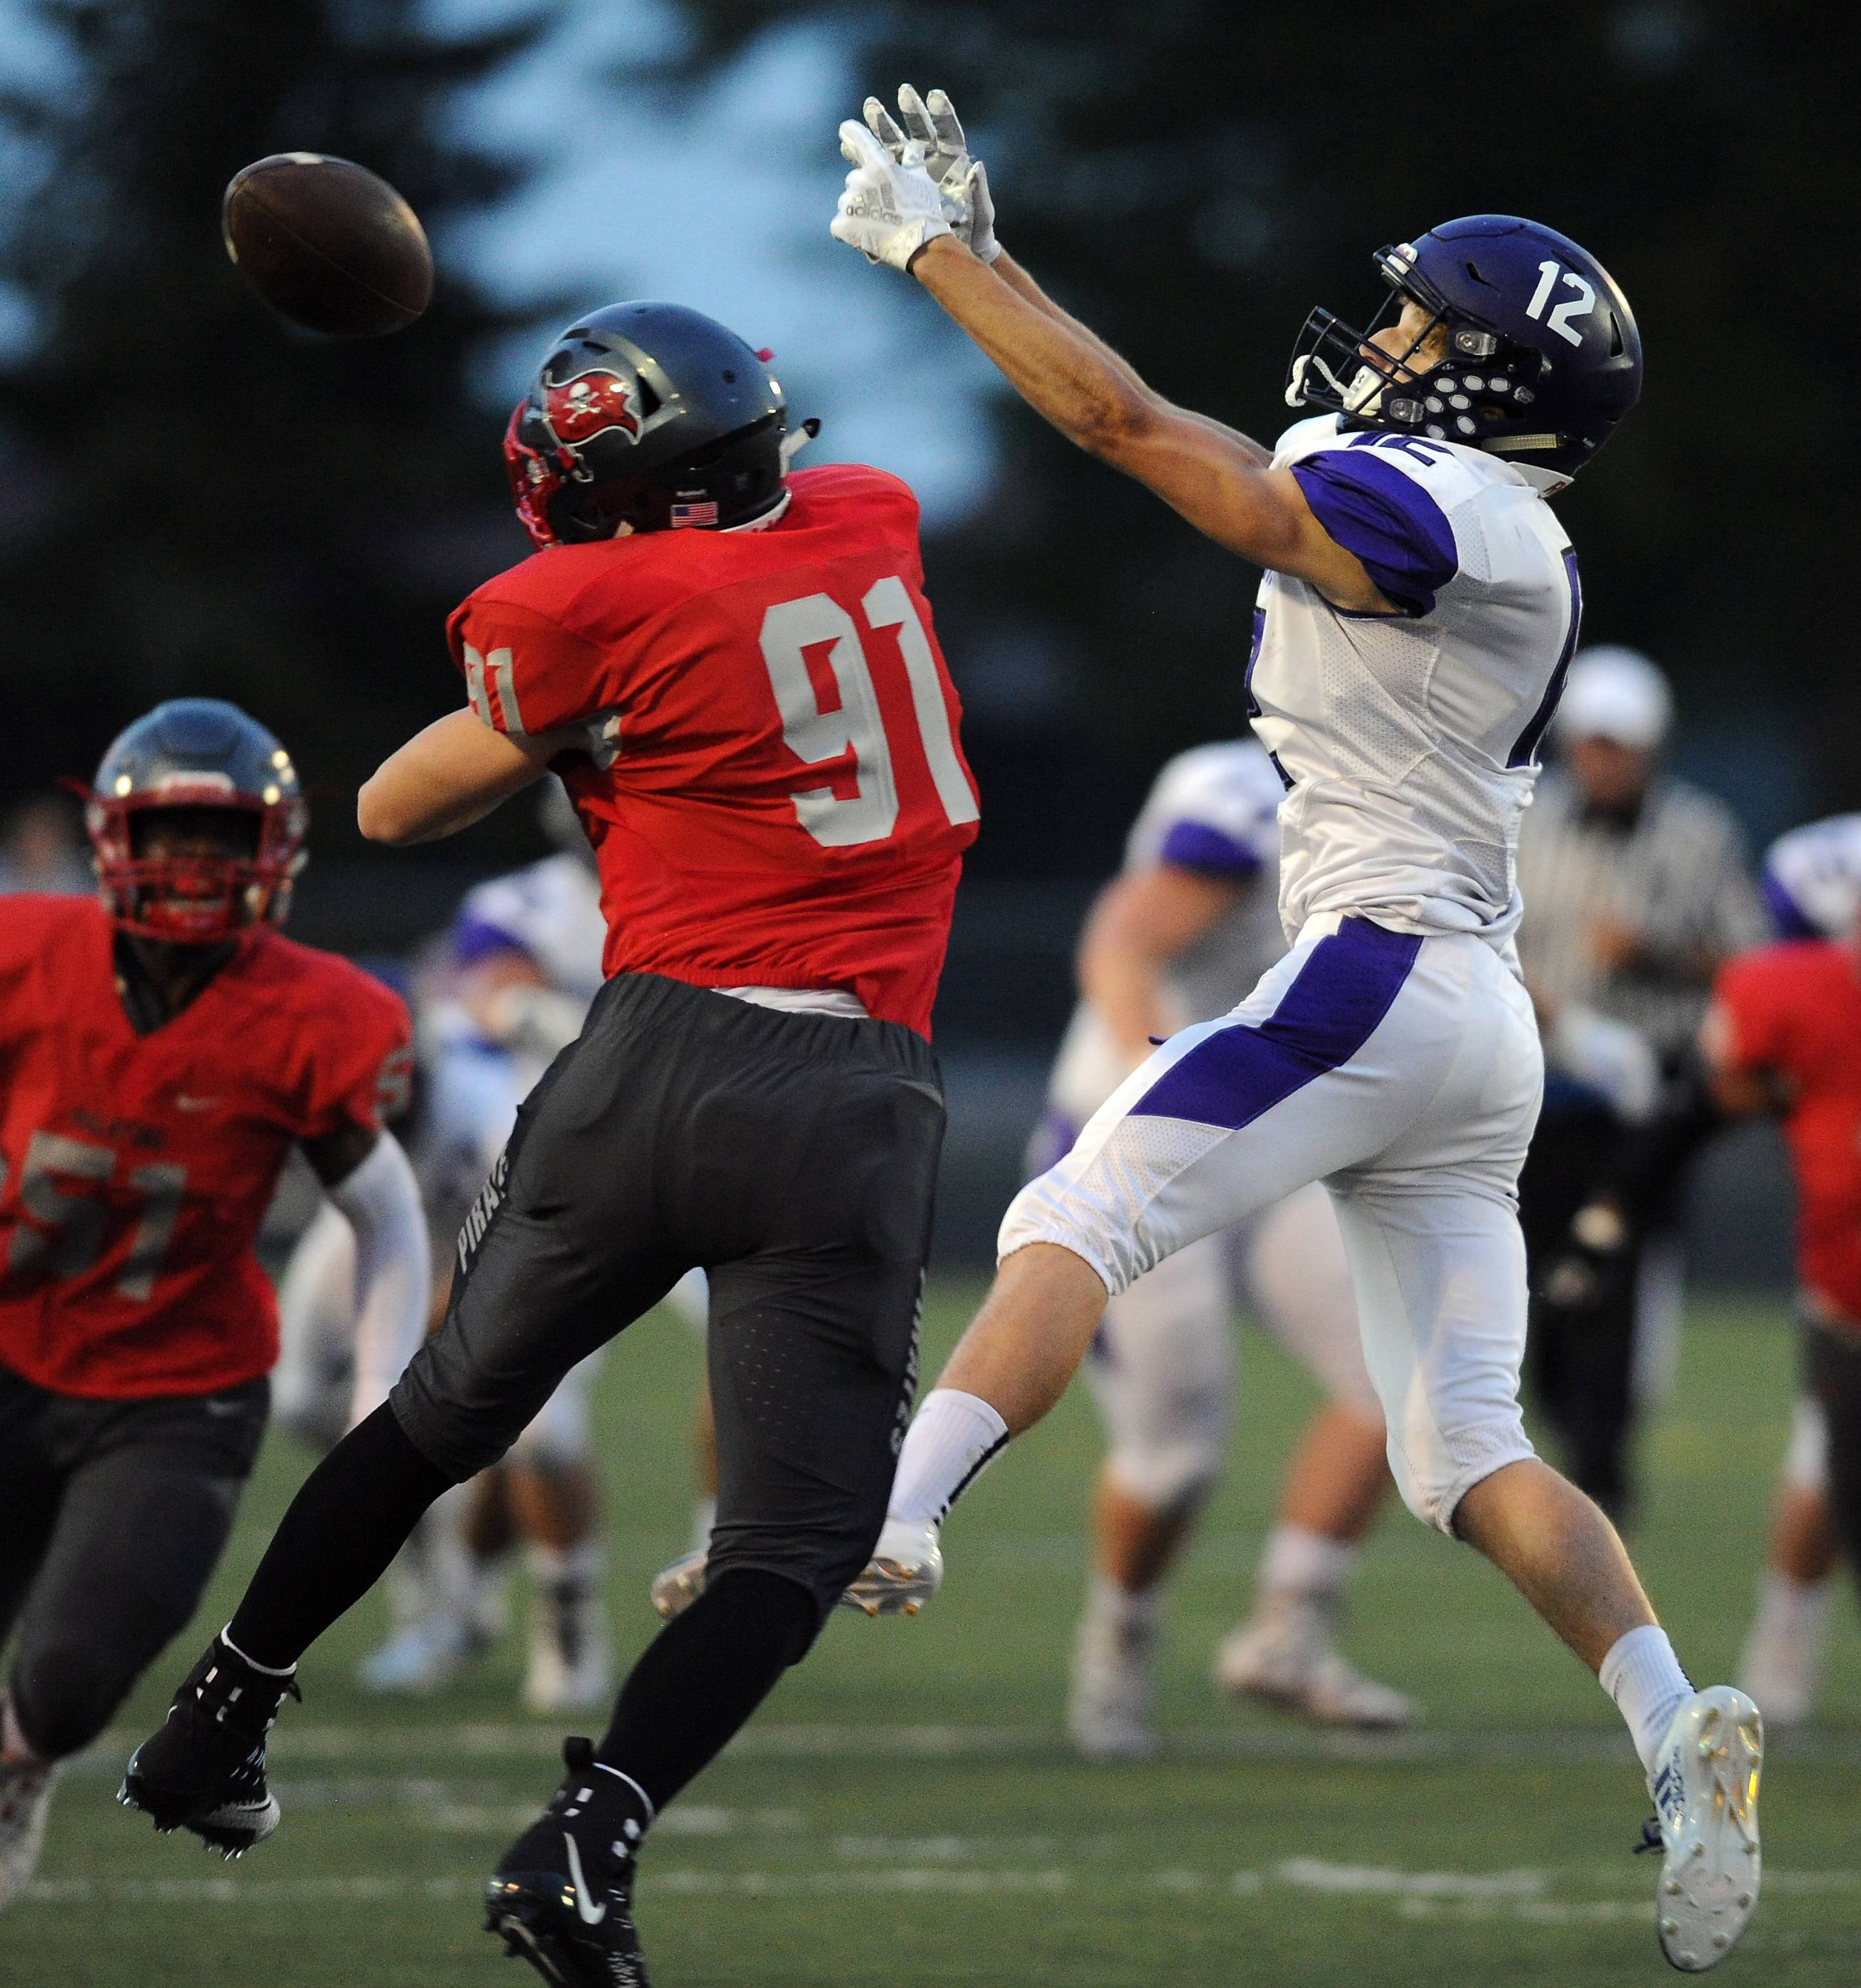 Palatine's Mossimo Vardamaskos breaks up a pass intended for Rolling Meadows' Charlie Svoboda in the in first quarter at Palatine on Friday.